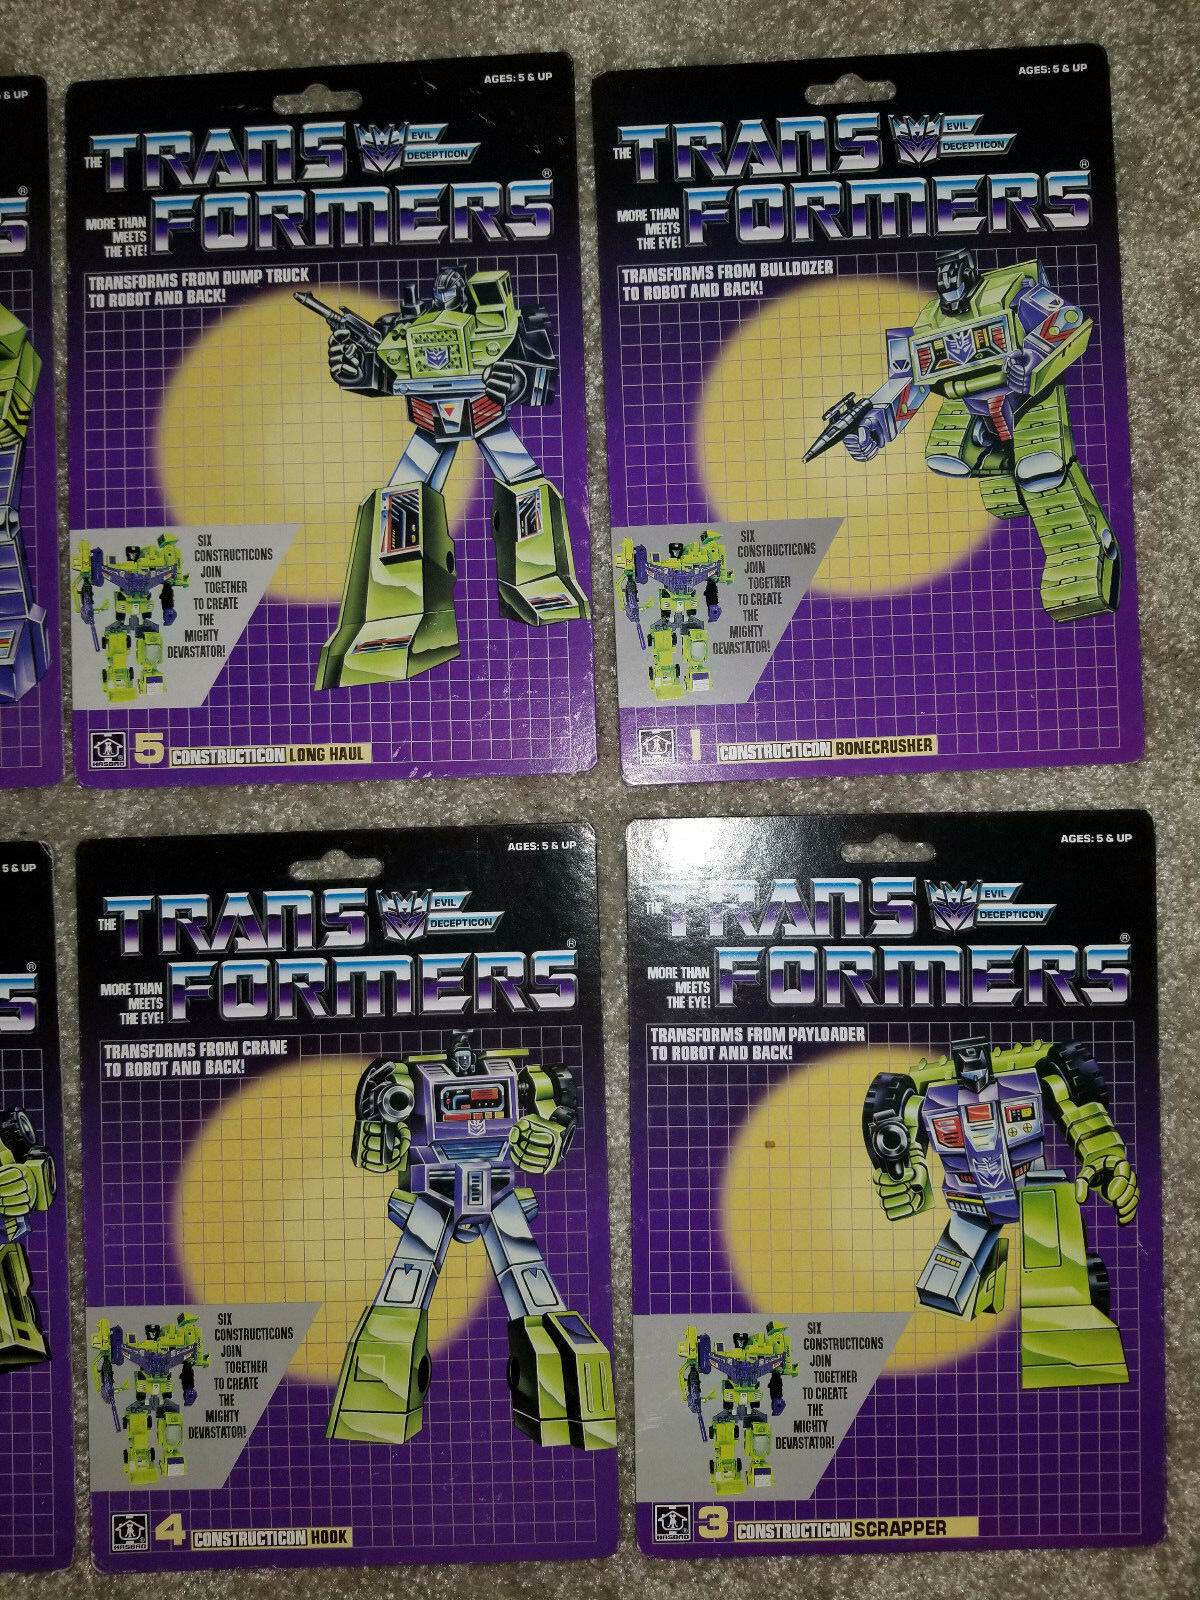 (7) (7) (7) TRANSFORMERS G1 DEVASTATOR CONSTRUCTICONS REPRODUCTION RESTORATION CARDS fca568